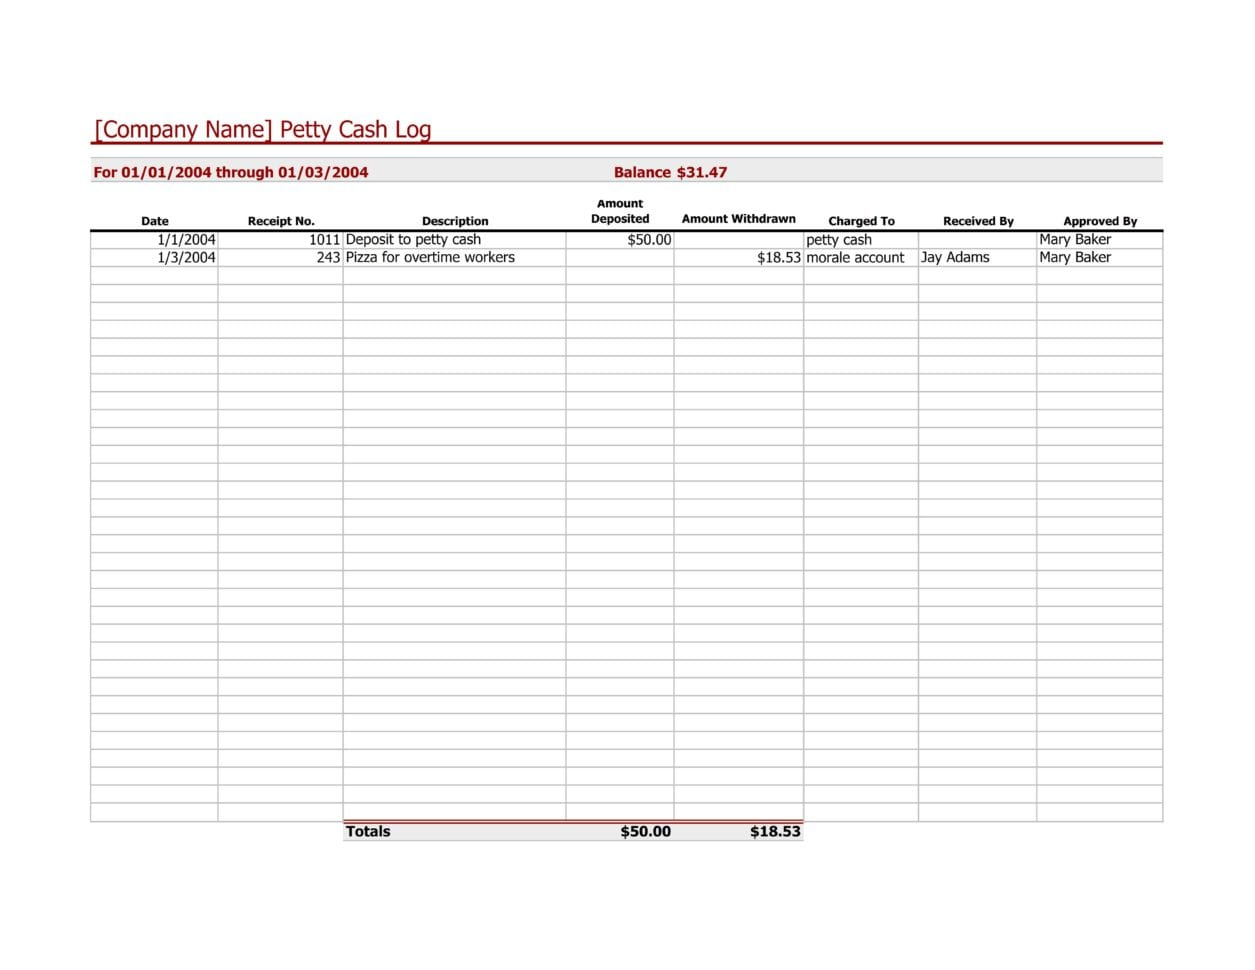 Account Payable Record Template Free Bookkeeping Templates Accounting In Excel 2007 Template Small Business Expense Spreadsheet Template Basic Bookkeeping Spreadsheet Accounting Excel Program Accounting Spreadsheets For Small Business  Excel Accounting Templates Free Accounting Spreadsheet Templates Accounting Spreadshee